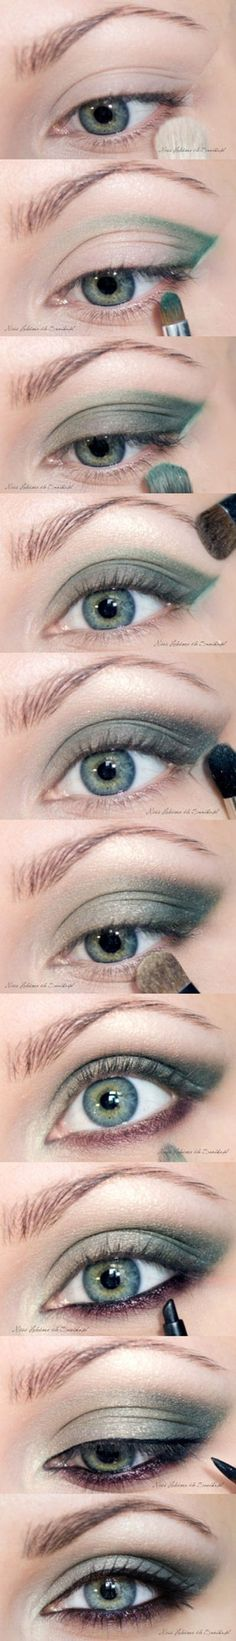 Emerald Smoky Eye Shadow Makeup Tutorial